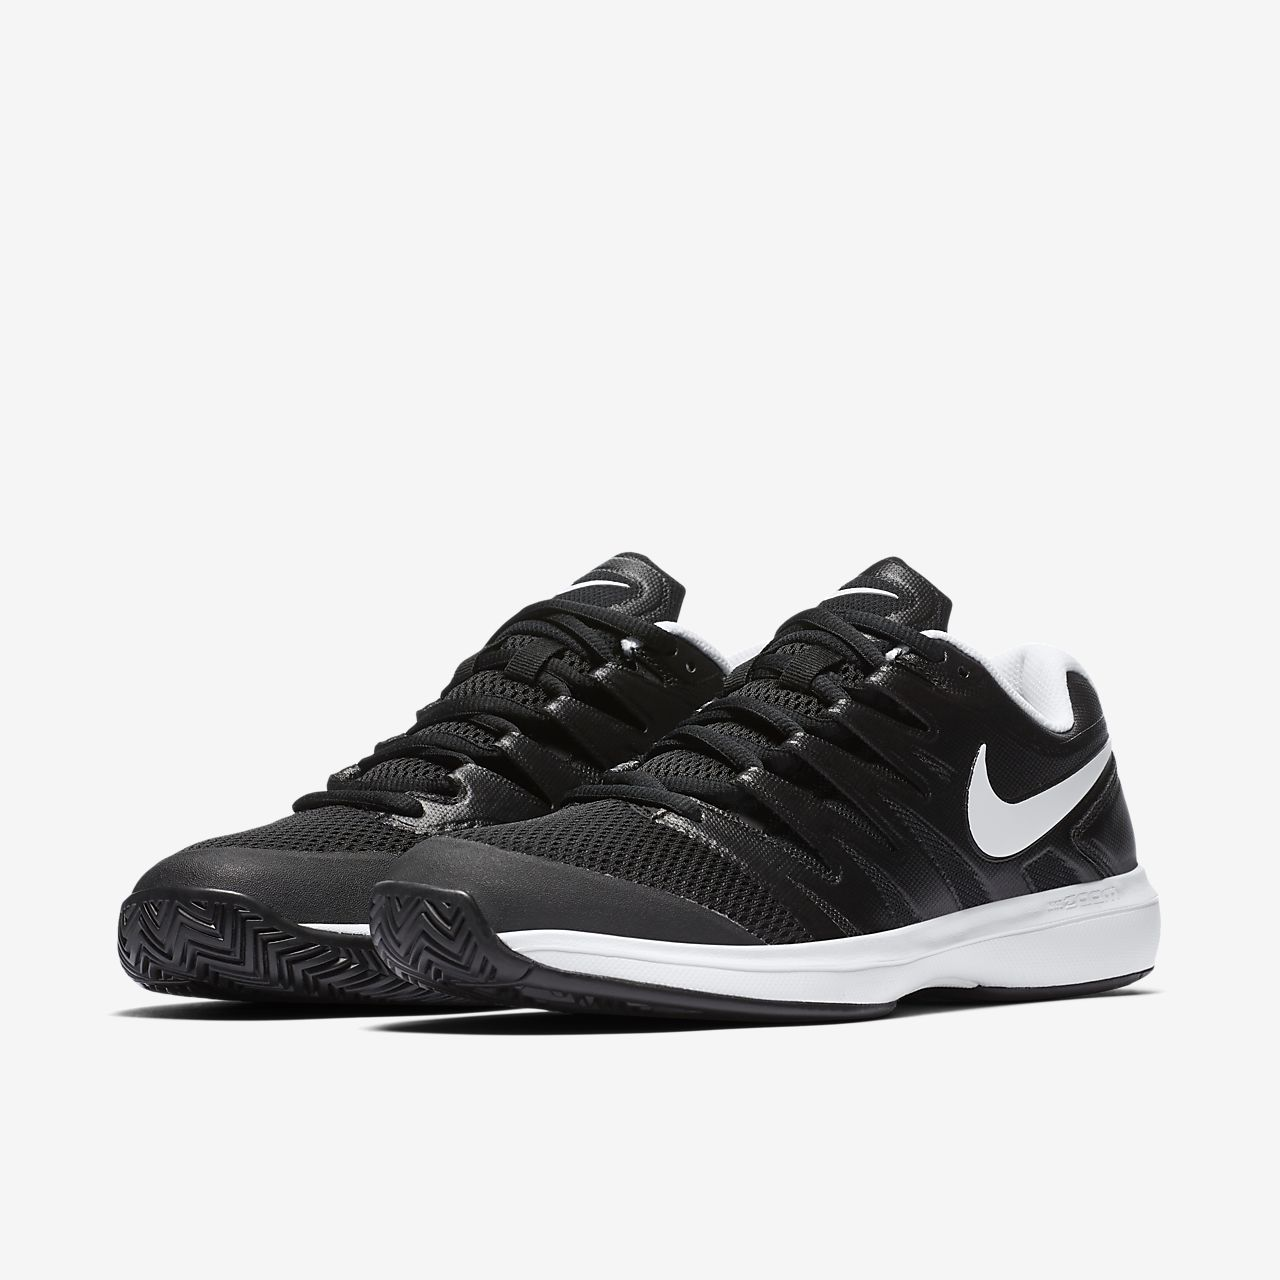 8e202edad64b NikeCourt Air Zoom Prestige Men s Hard Court Tennis Shoe. Nike.com GB